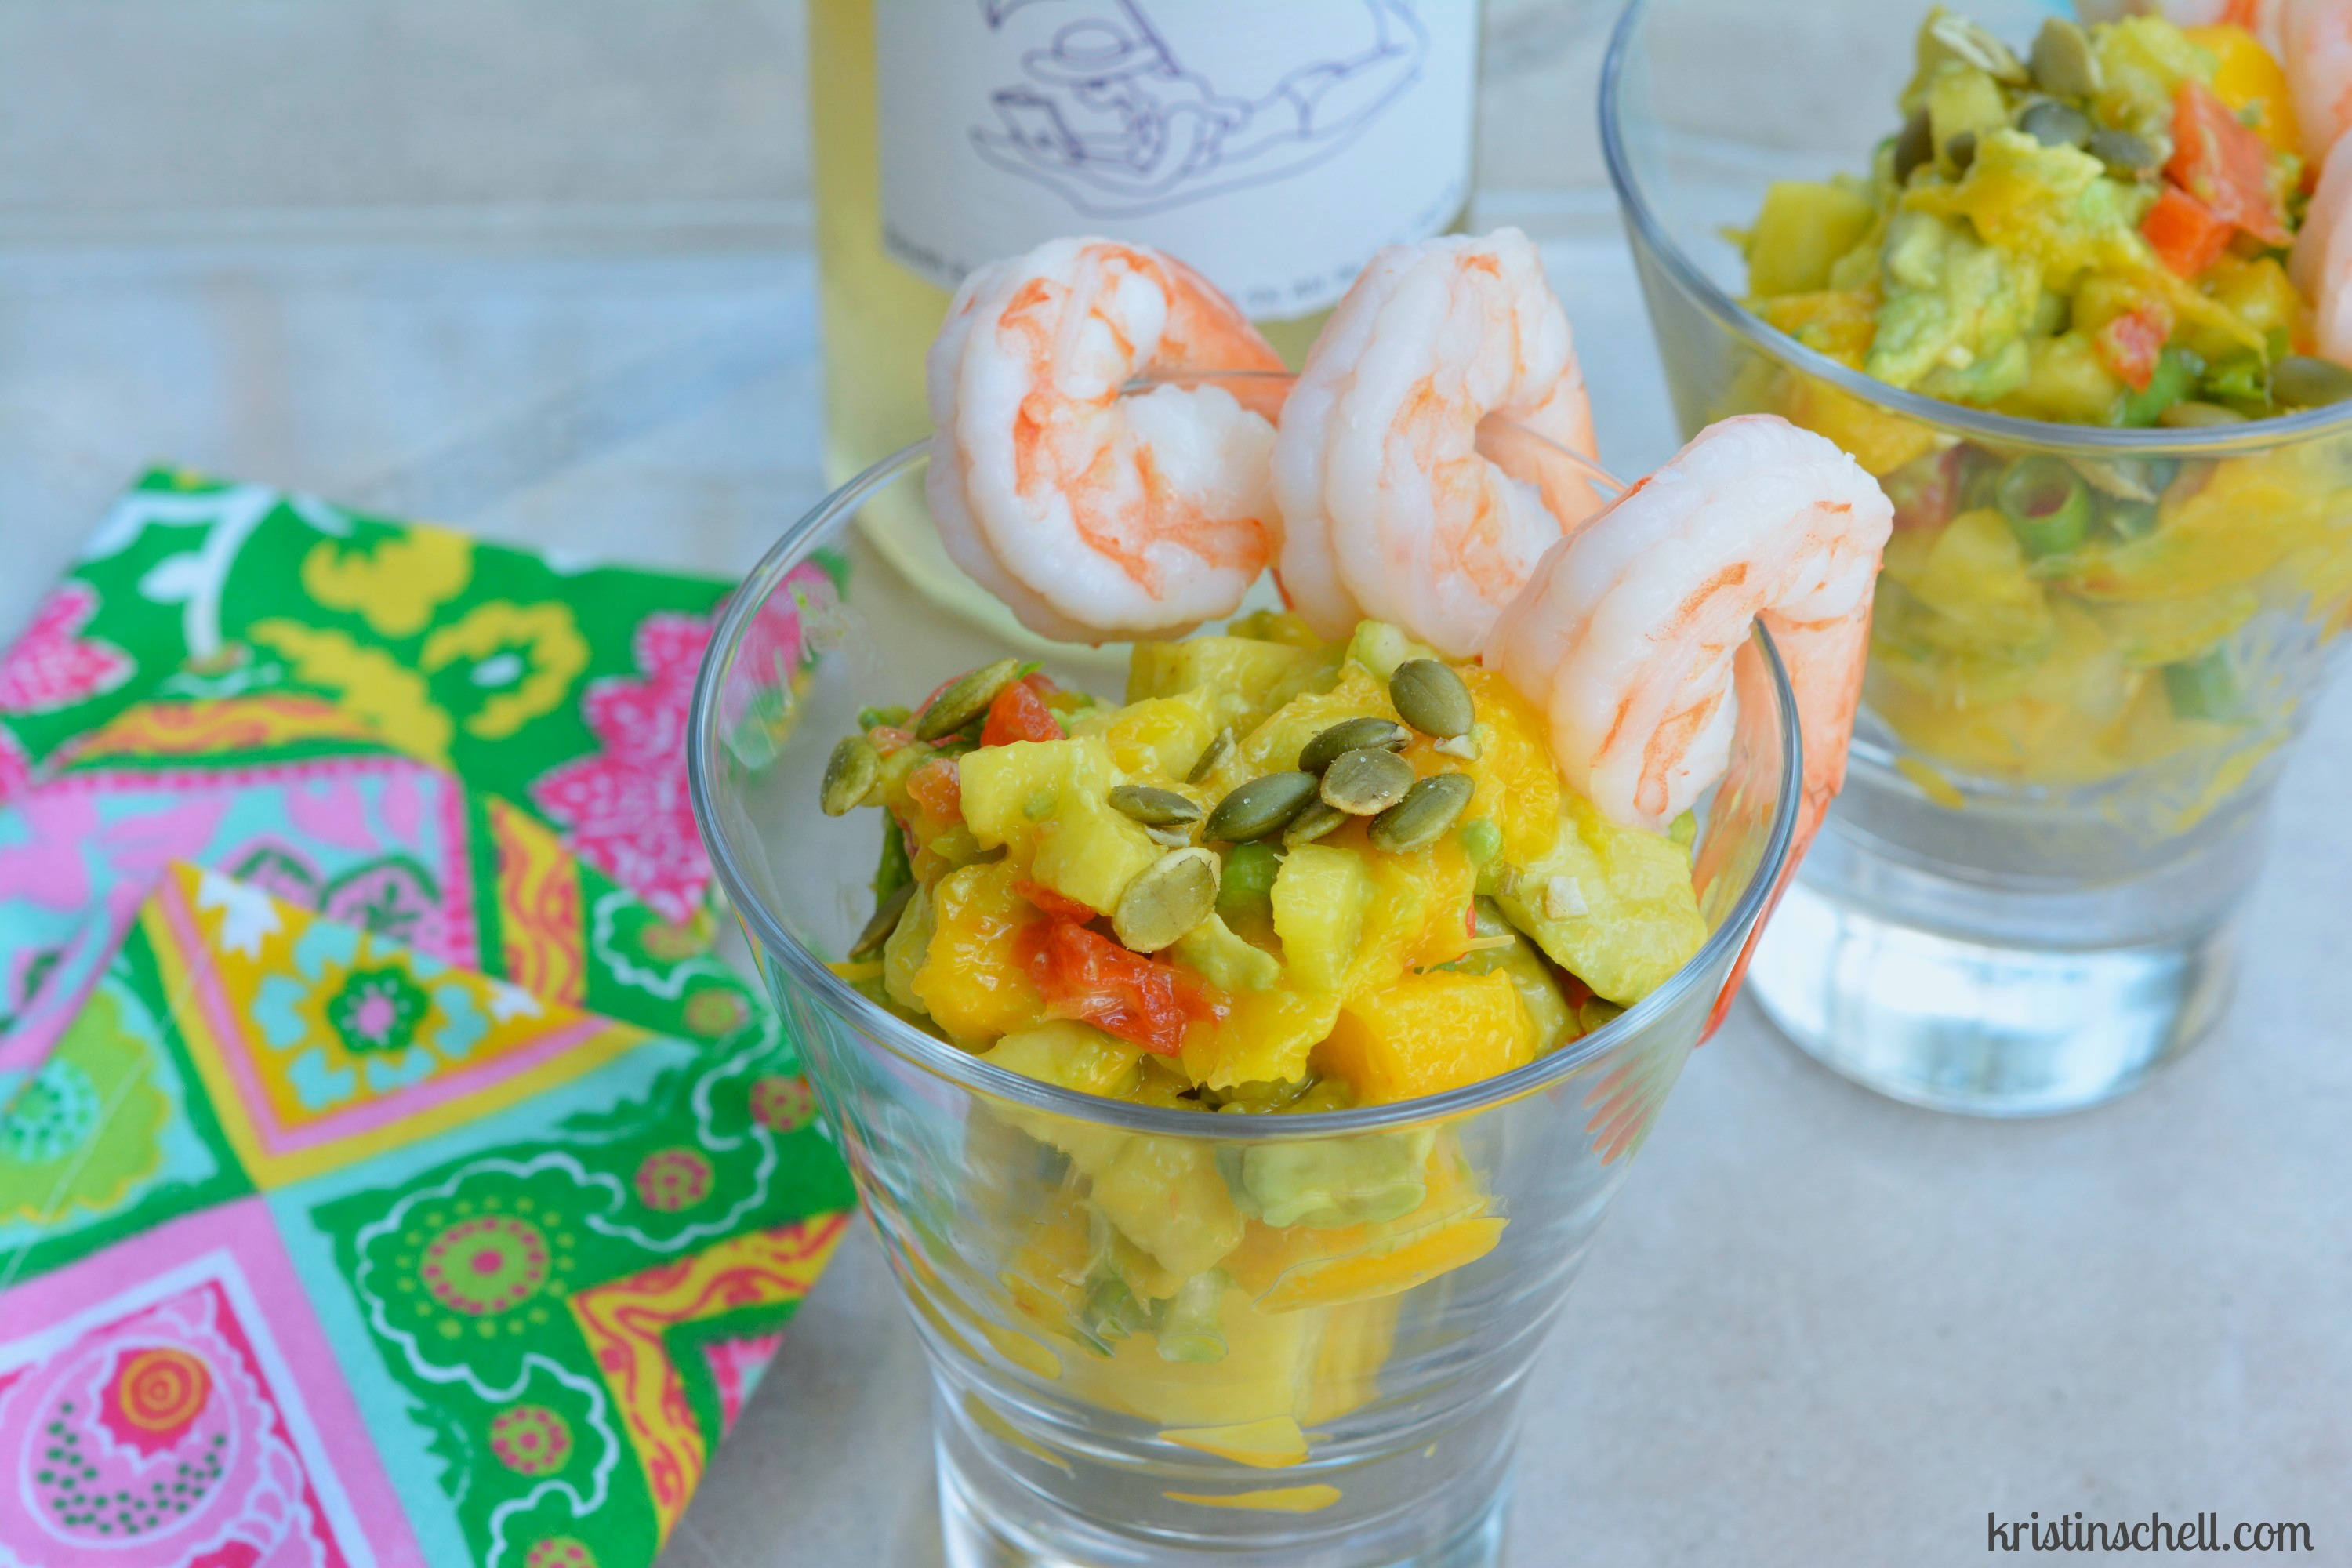 Shrimp with Mango & Avocado Salsa - The Turquoise Table